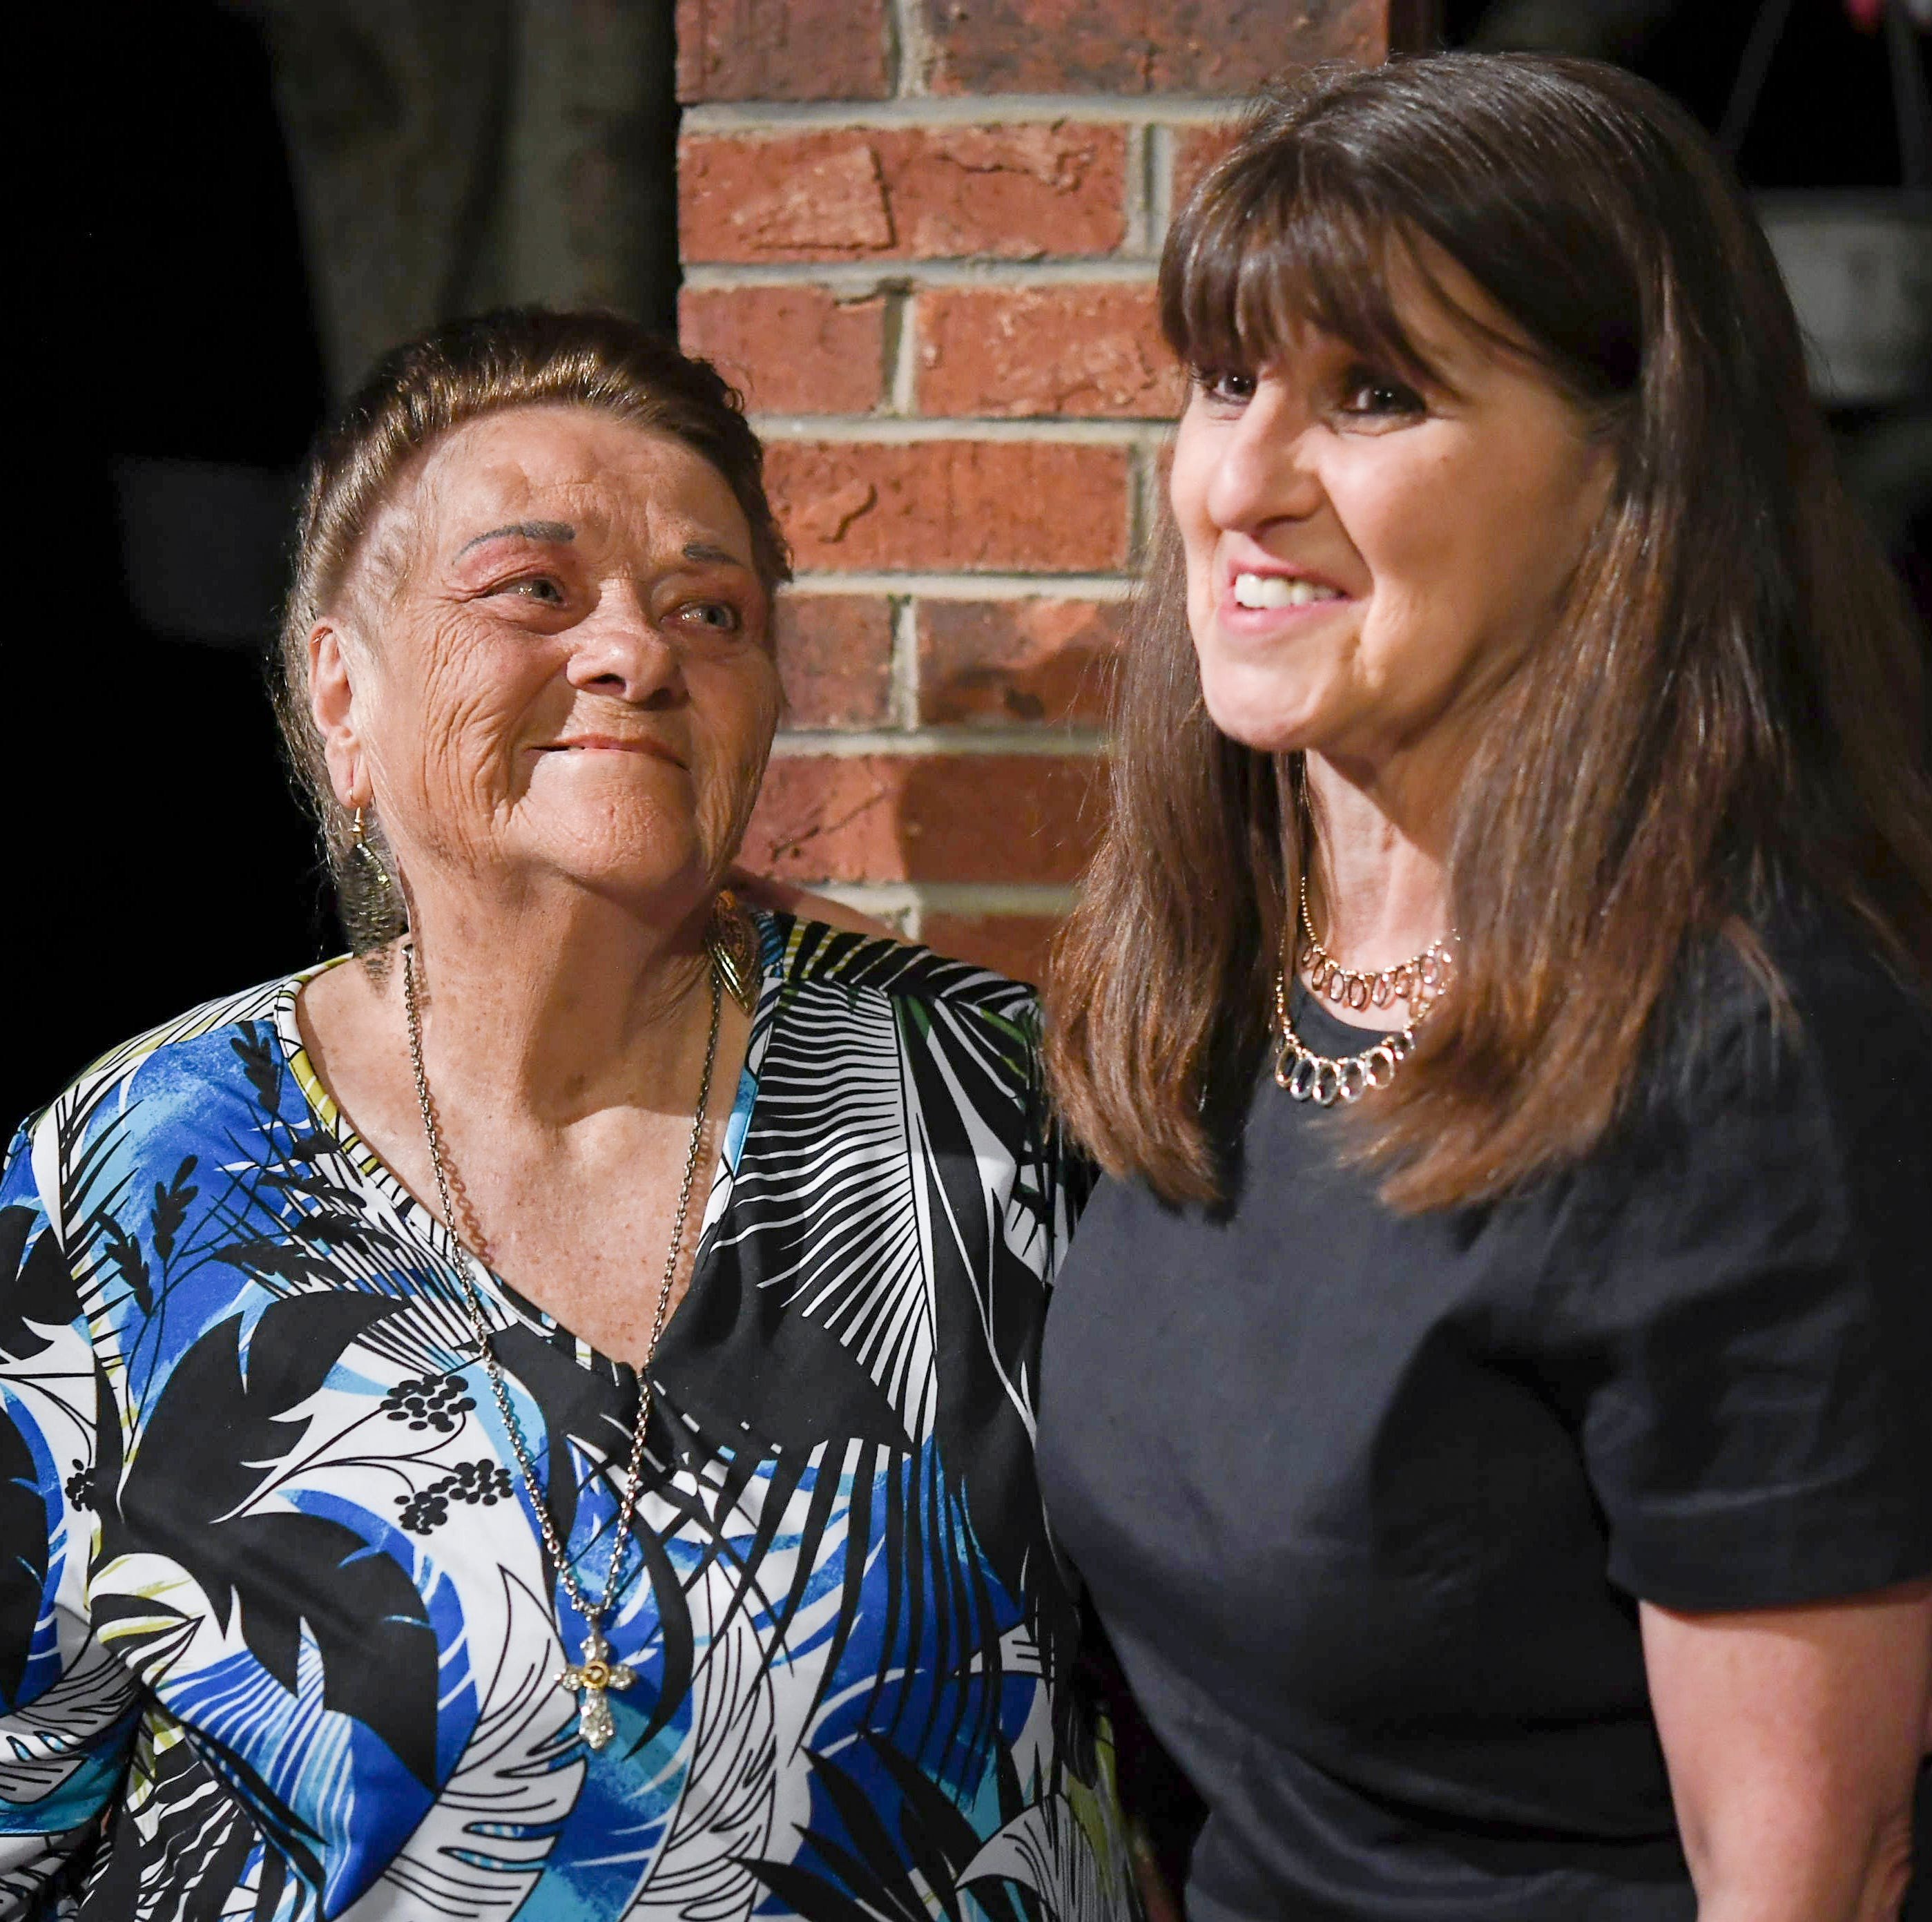 'I didn't think I'd ever see her again': Mother reunites with daughter given up 60 years ago